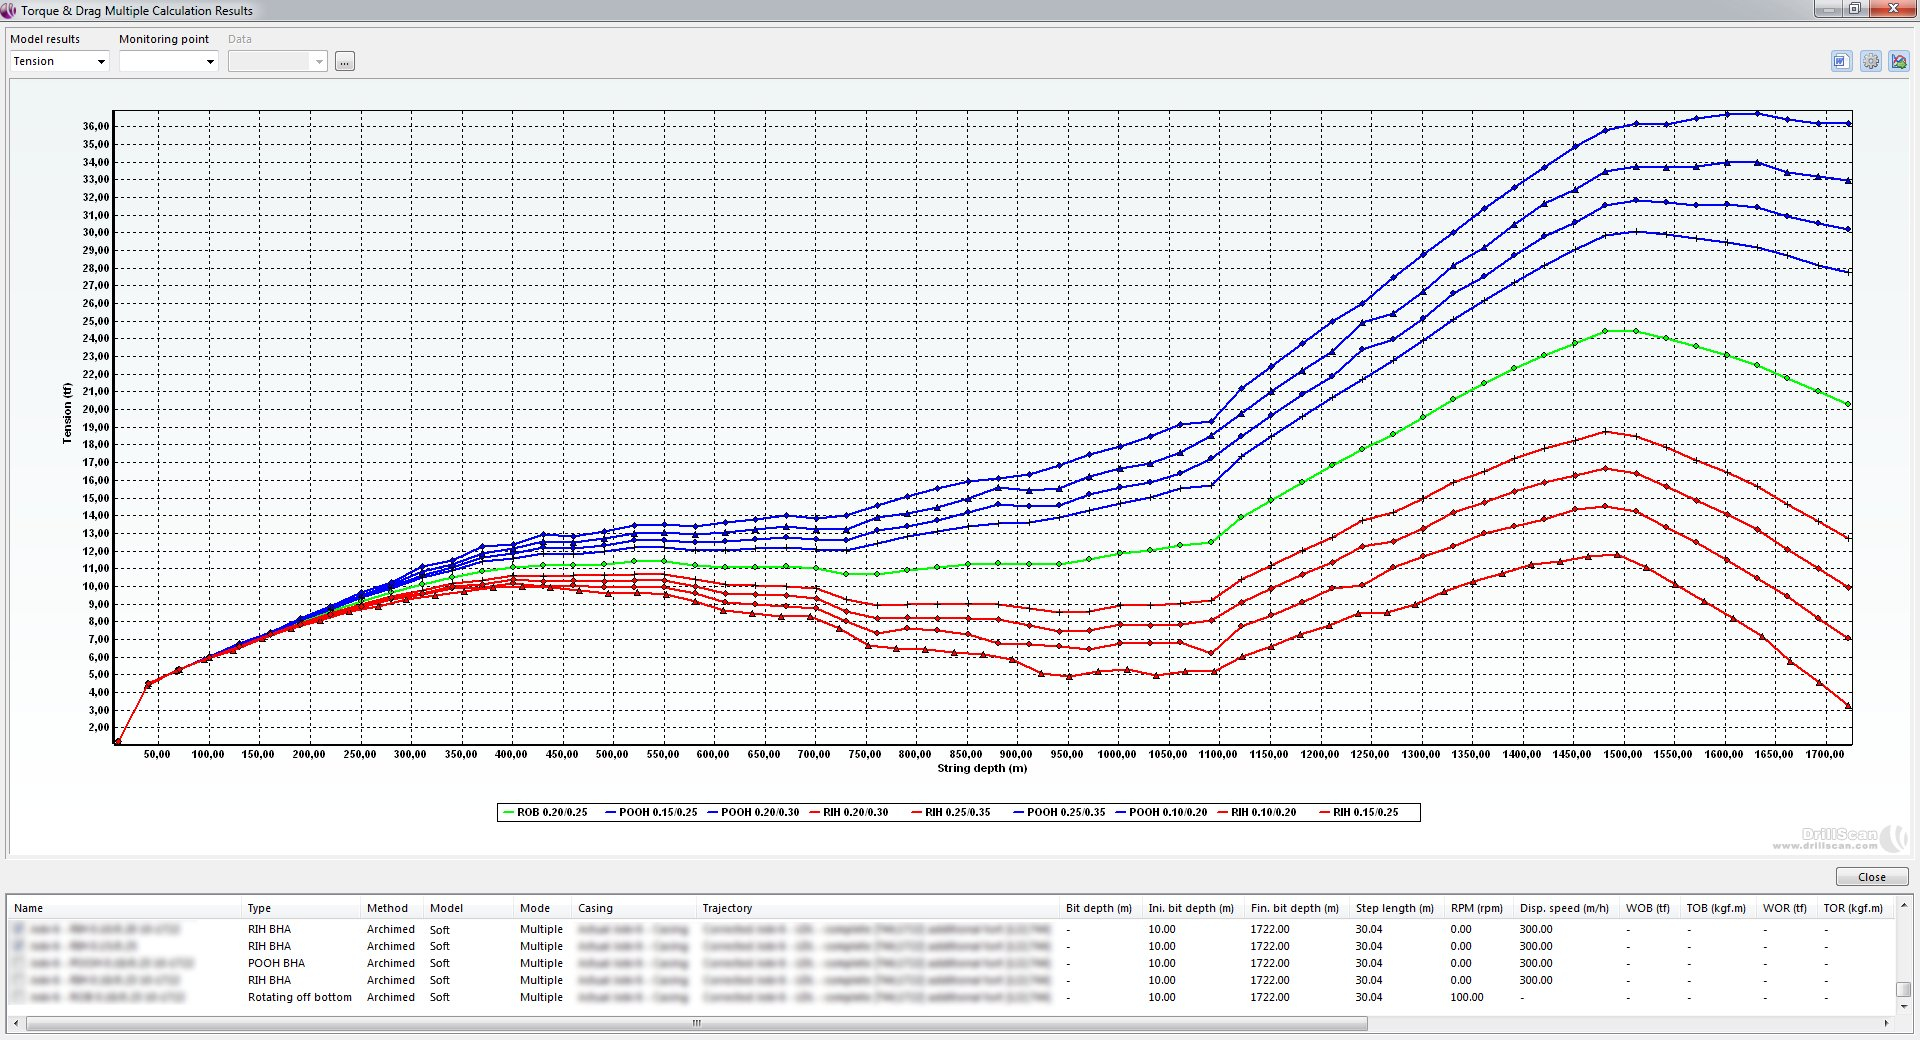 Software Torque And Drag And Soft String - Drillscan Drilling Software For Torque And Drag Excel Spreadsheet